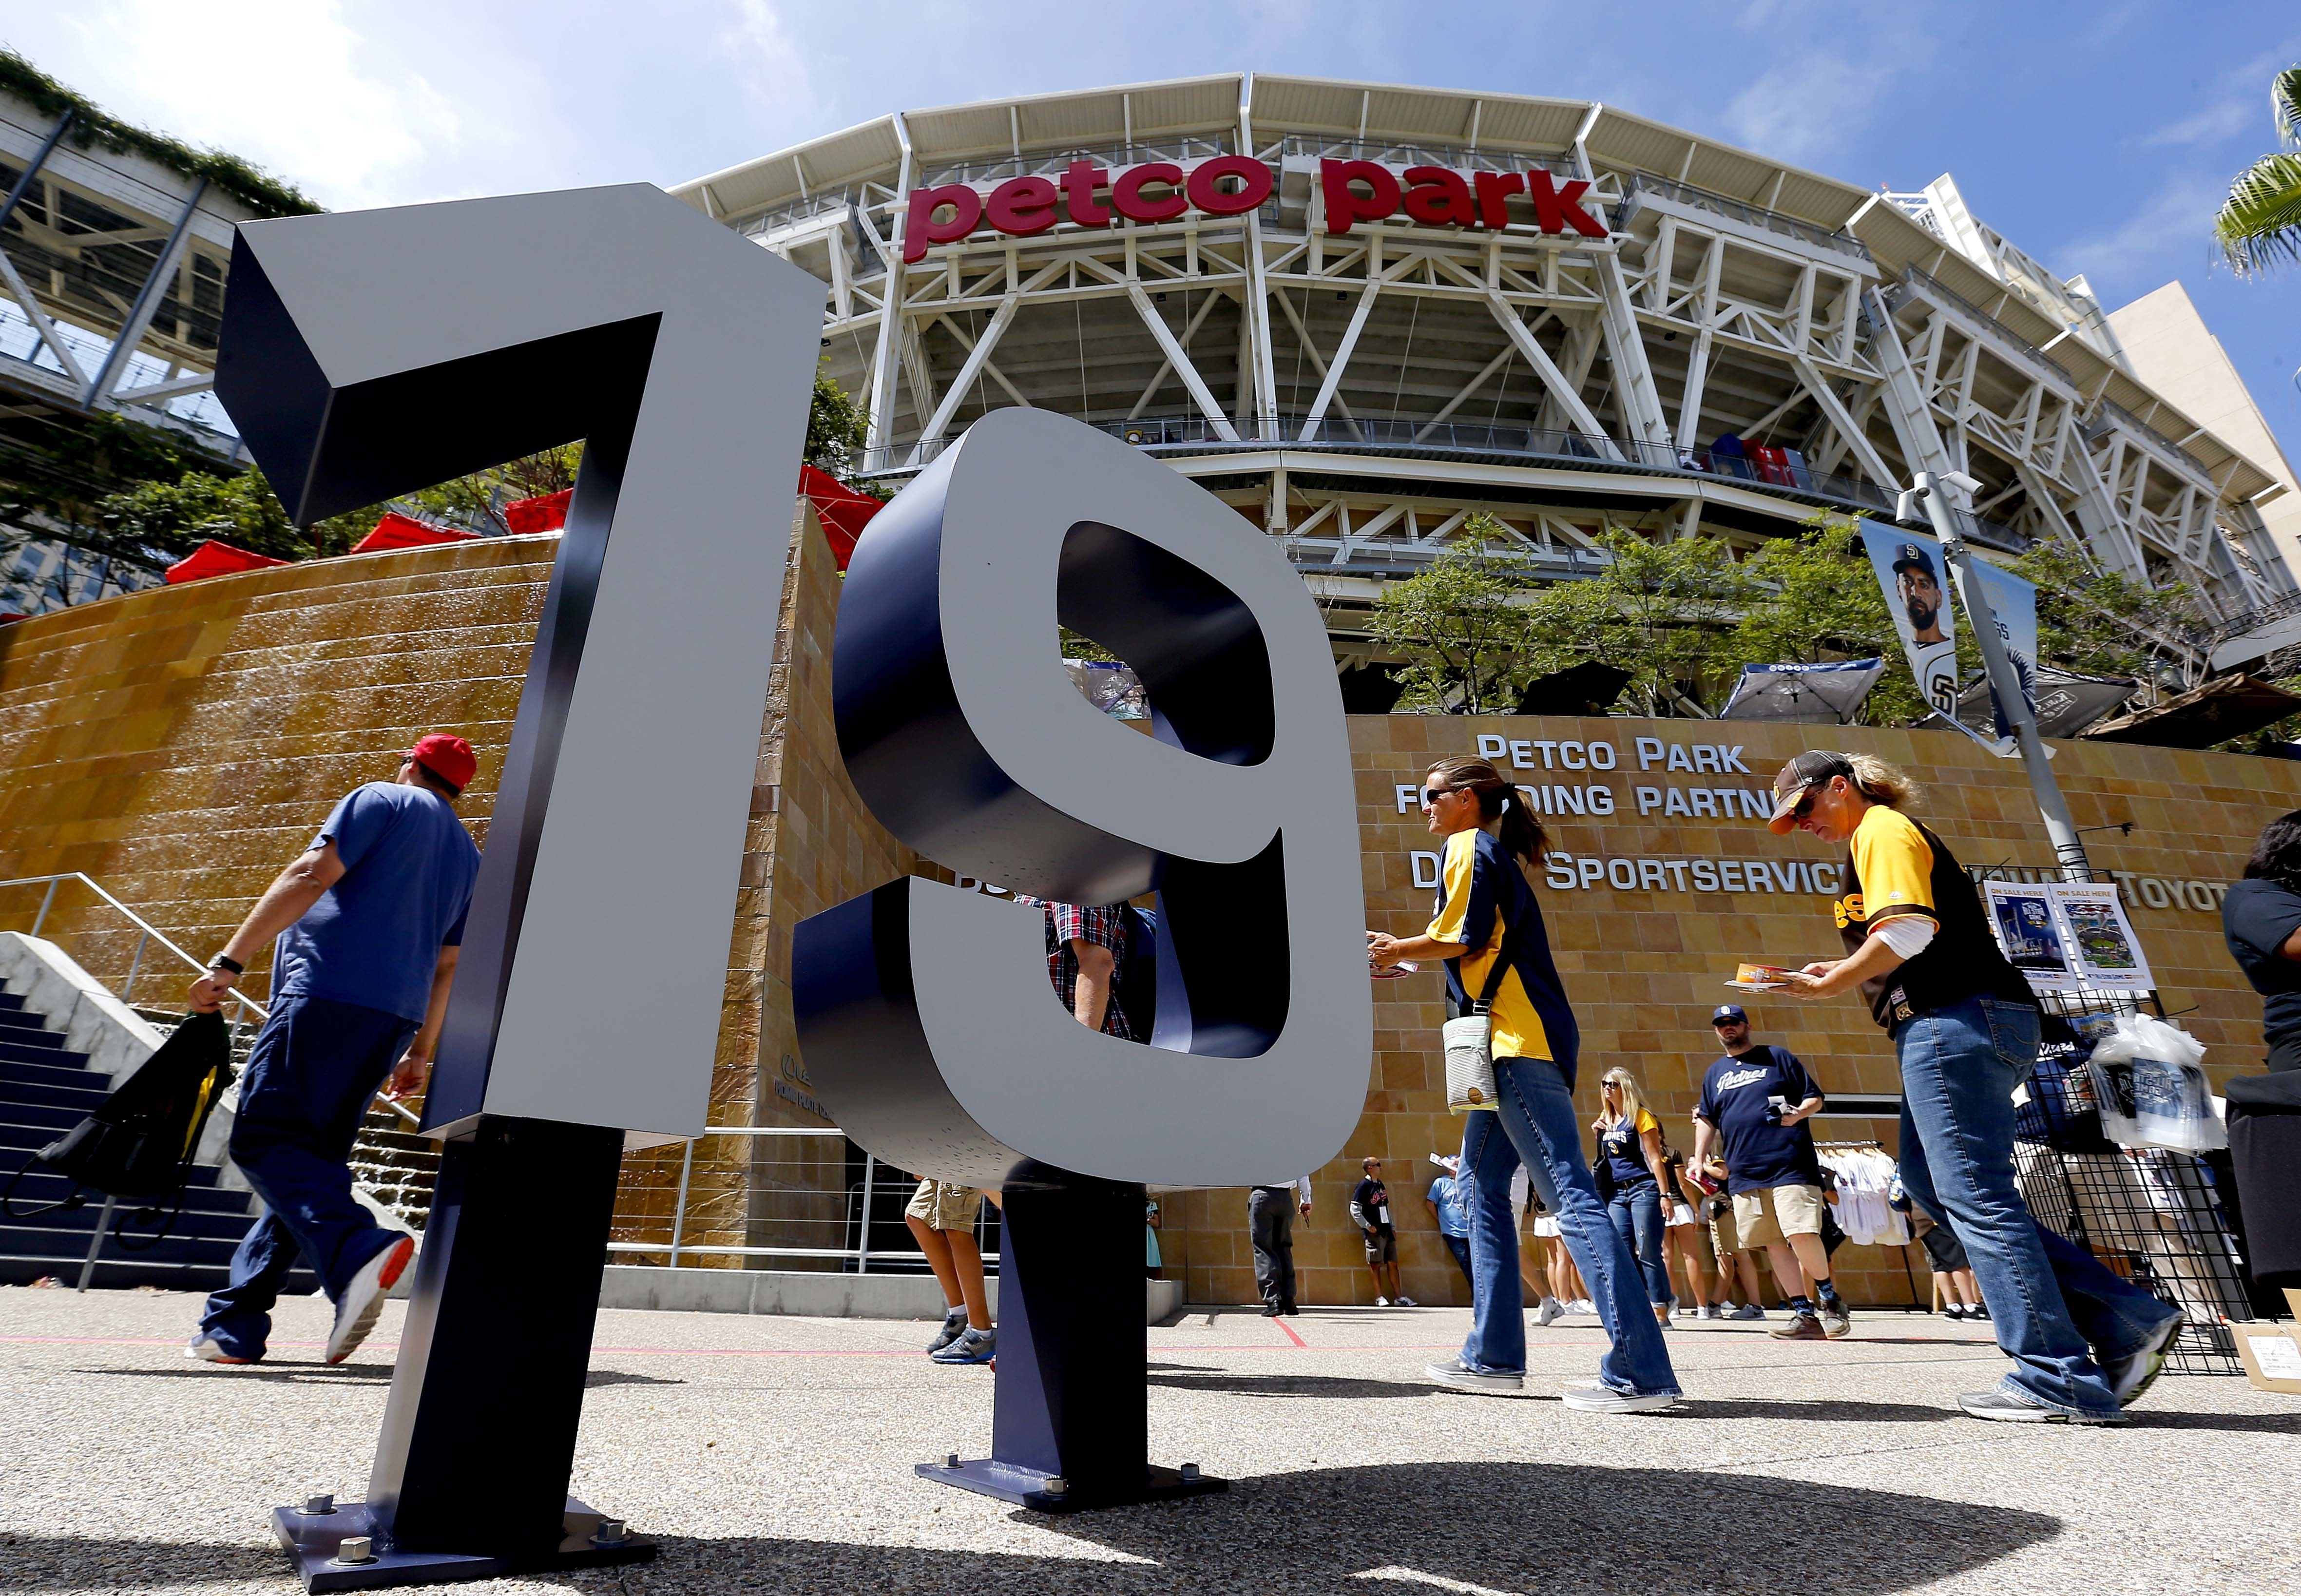 Fans arrive at Petco Park prior to the MLB baseball All-Star Home Run Derby, Monday, July 11, 2016, in San Diego. (AP Photo/Matt York)